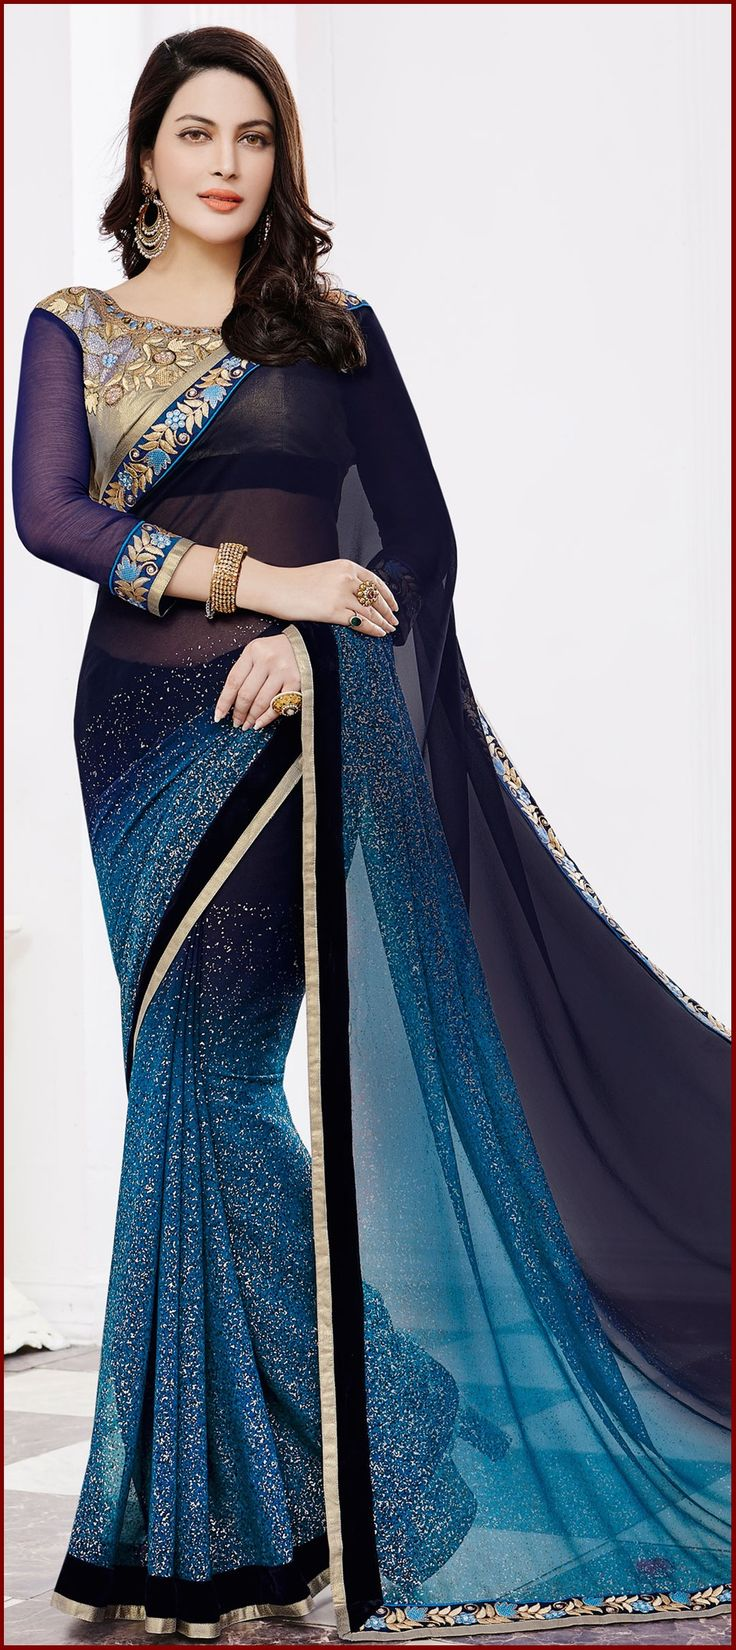 Pakistani Designer Sarees Collection For Girls #Designer #Sarees #PakistaniSaree